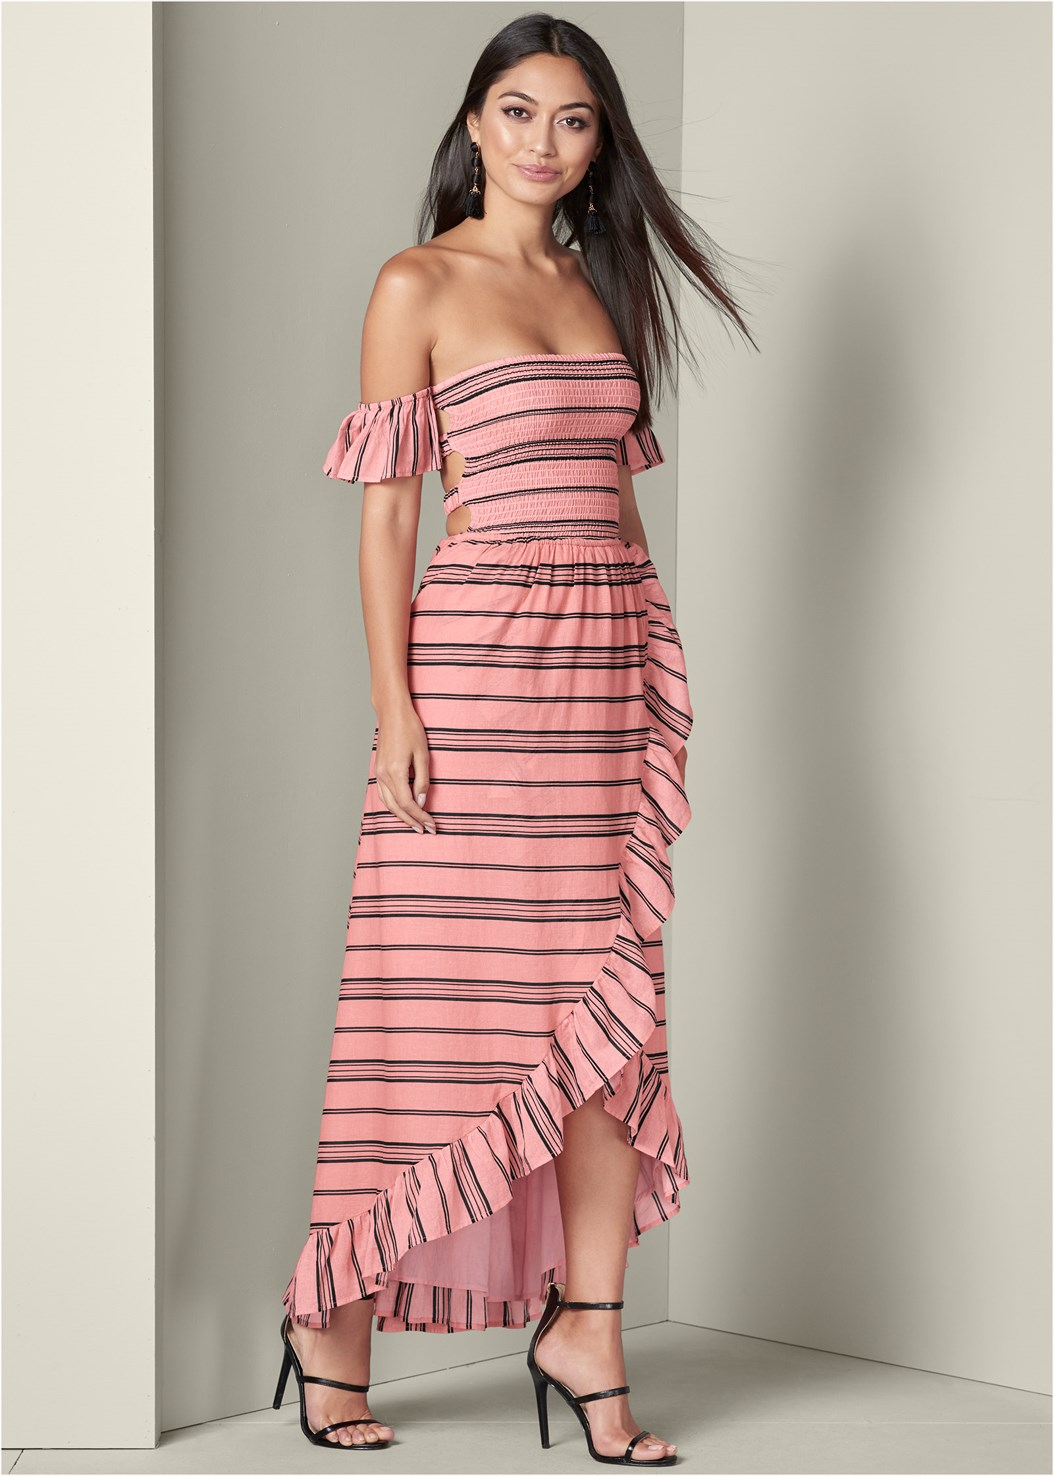 Smocked Ruffle Detail Dress,High Heel Strappy Sandals,Bauble Fringe Earrings